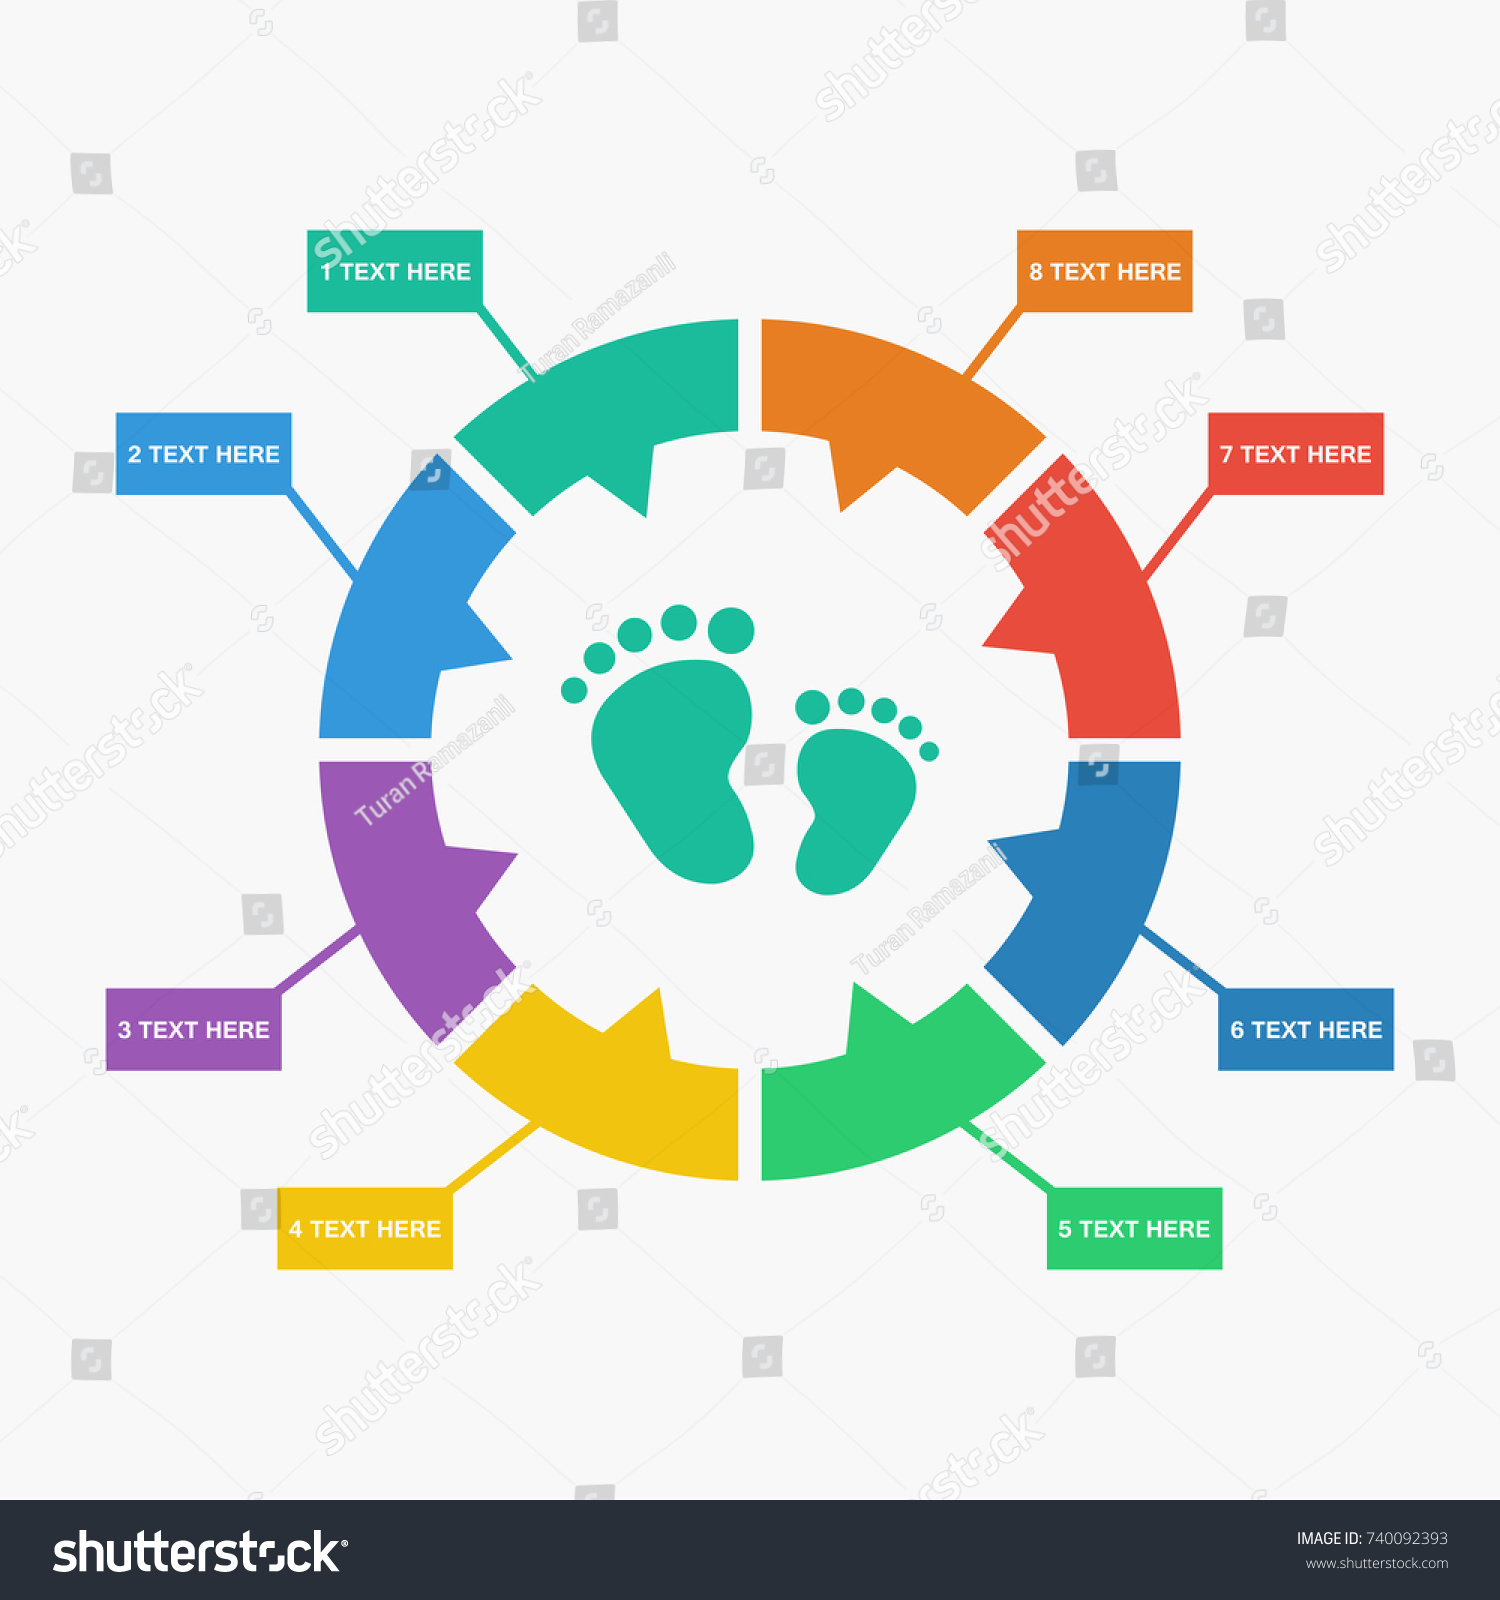 stock vector simple foot icon 740092393 simple foot icon stock vector 740092393 shutterstock